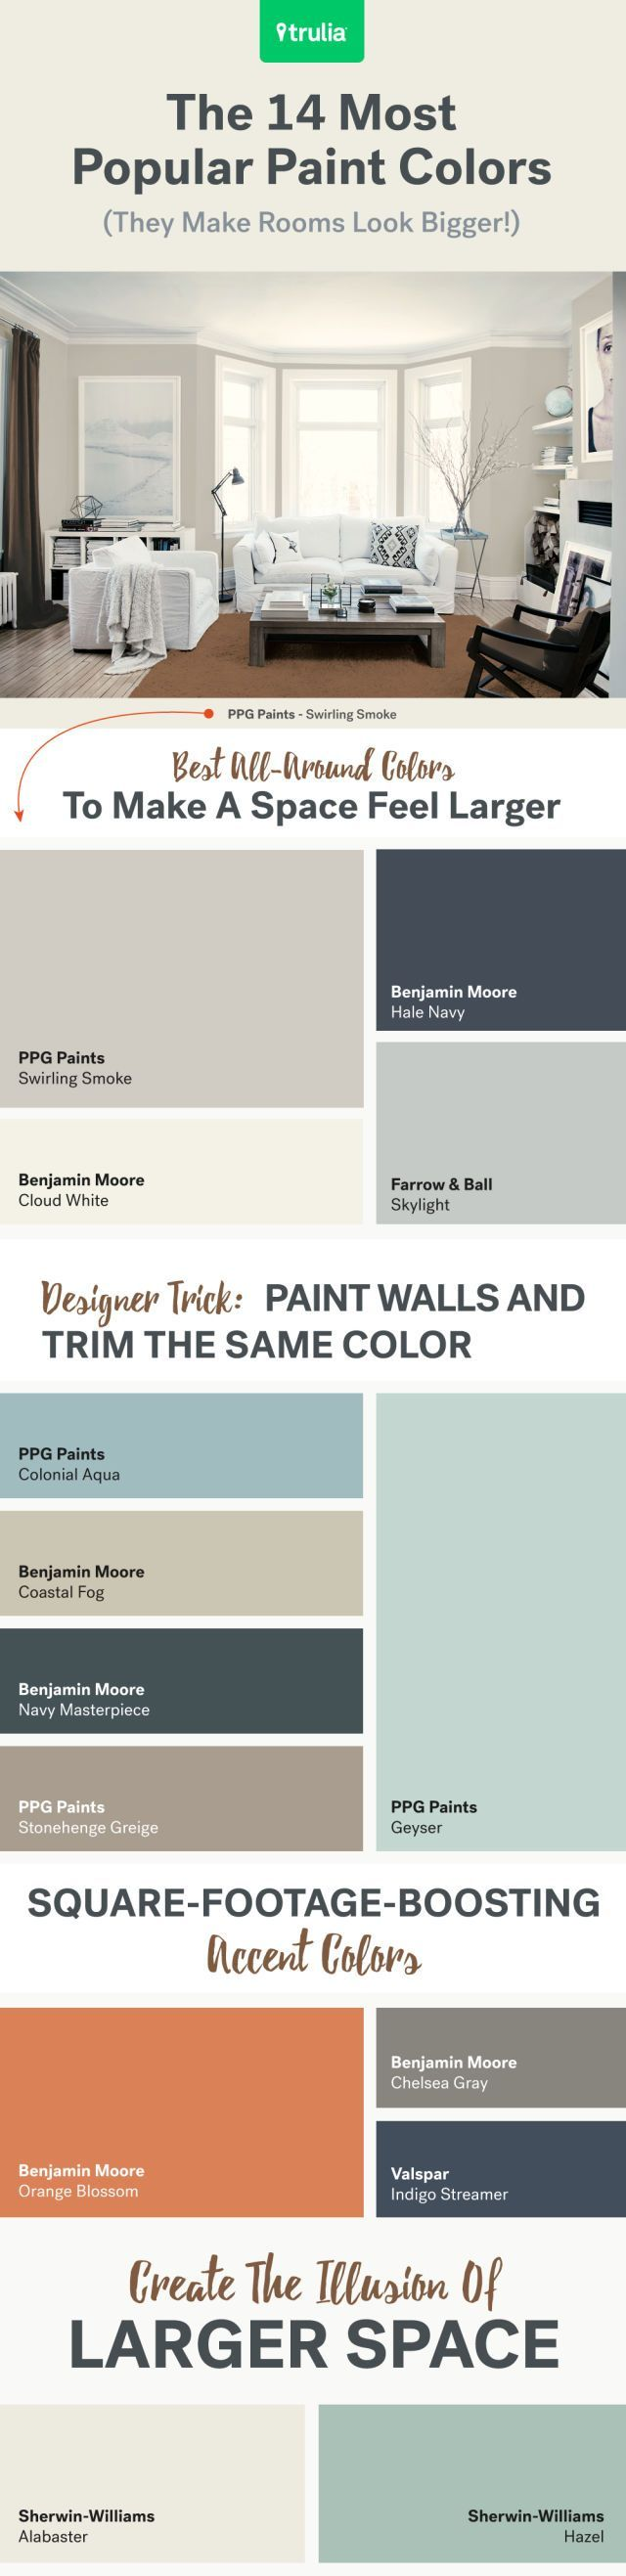 Paint colors website - 14 Paint Colors That Make A Small Space Feel Bigger